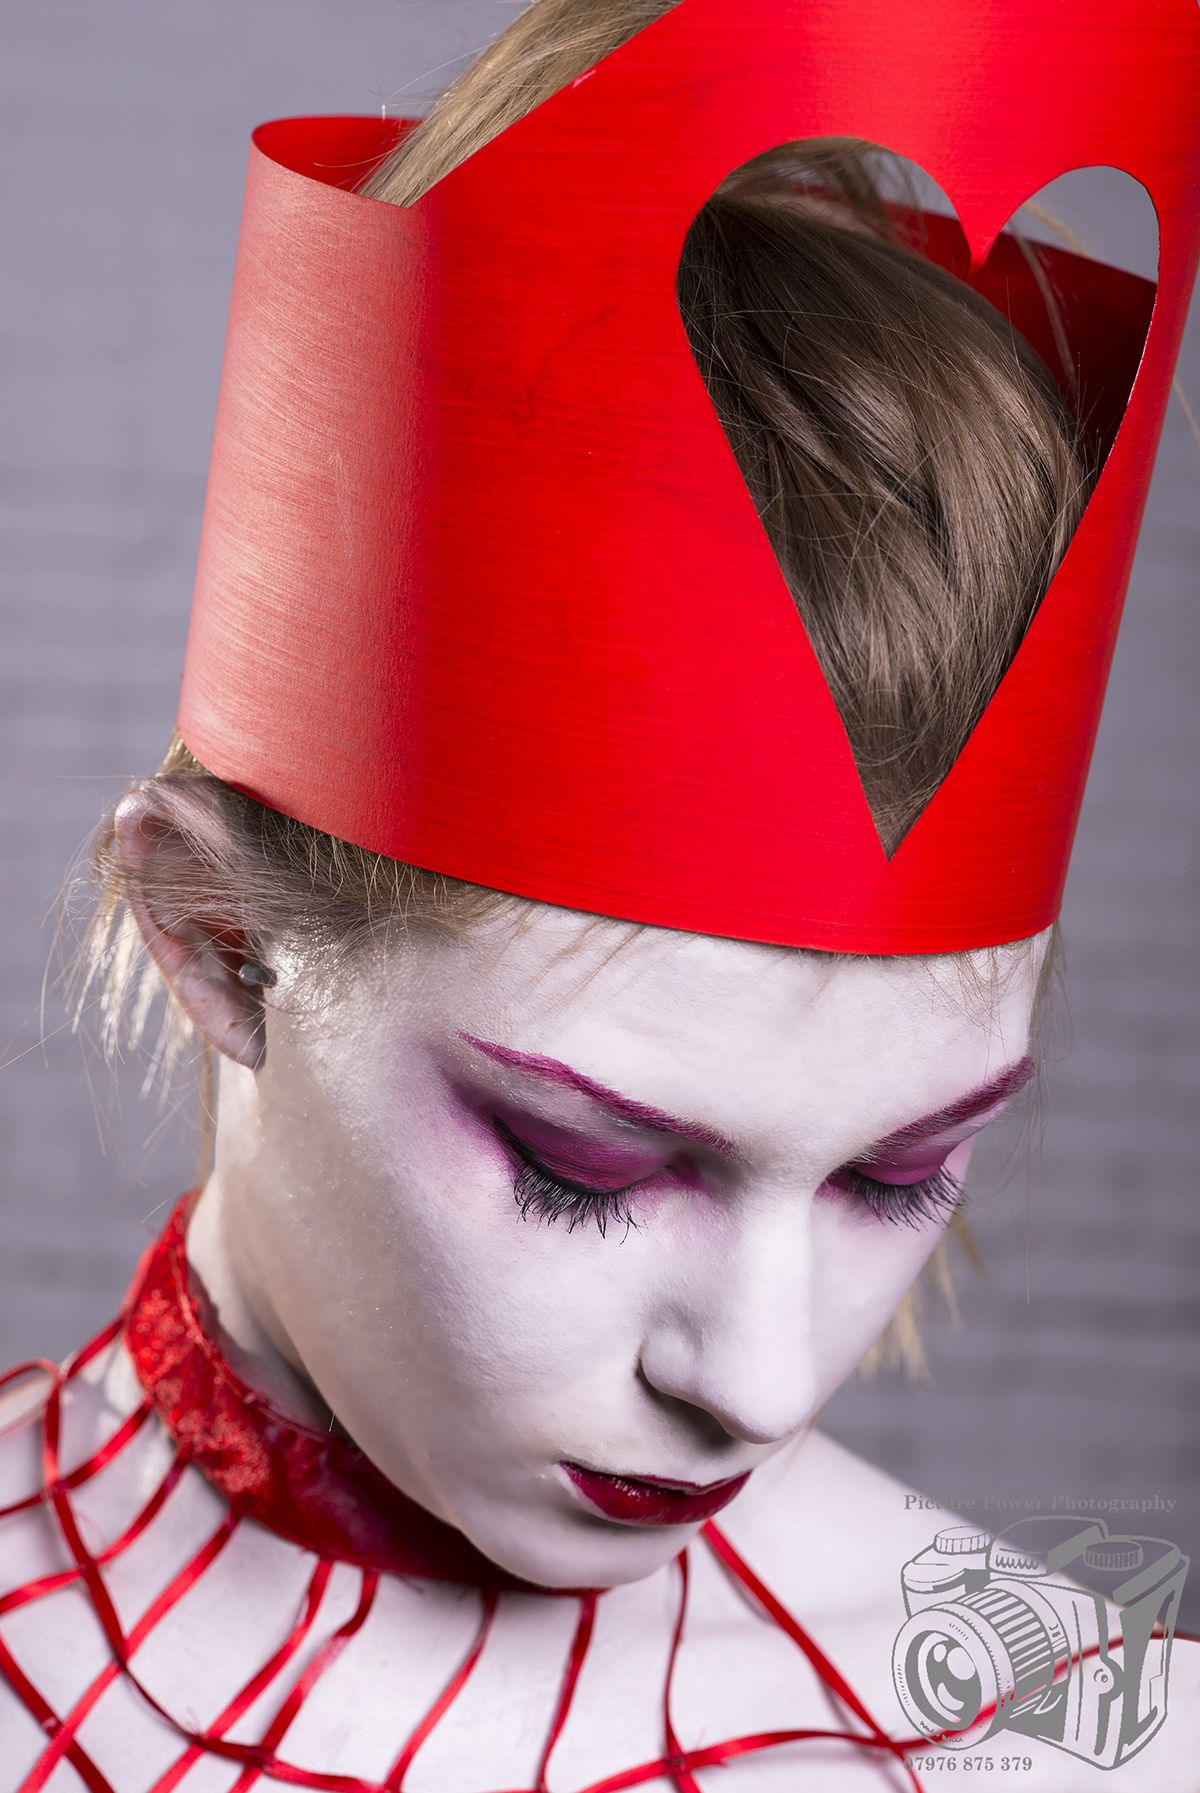 Queen of Hearts  by Carl Jackson, Picture Power Photography